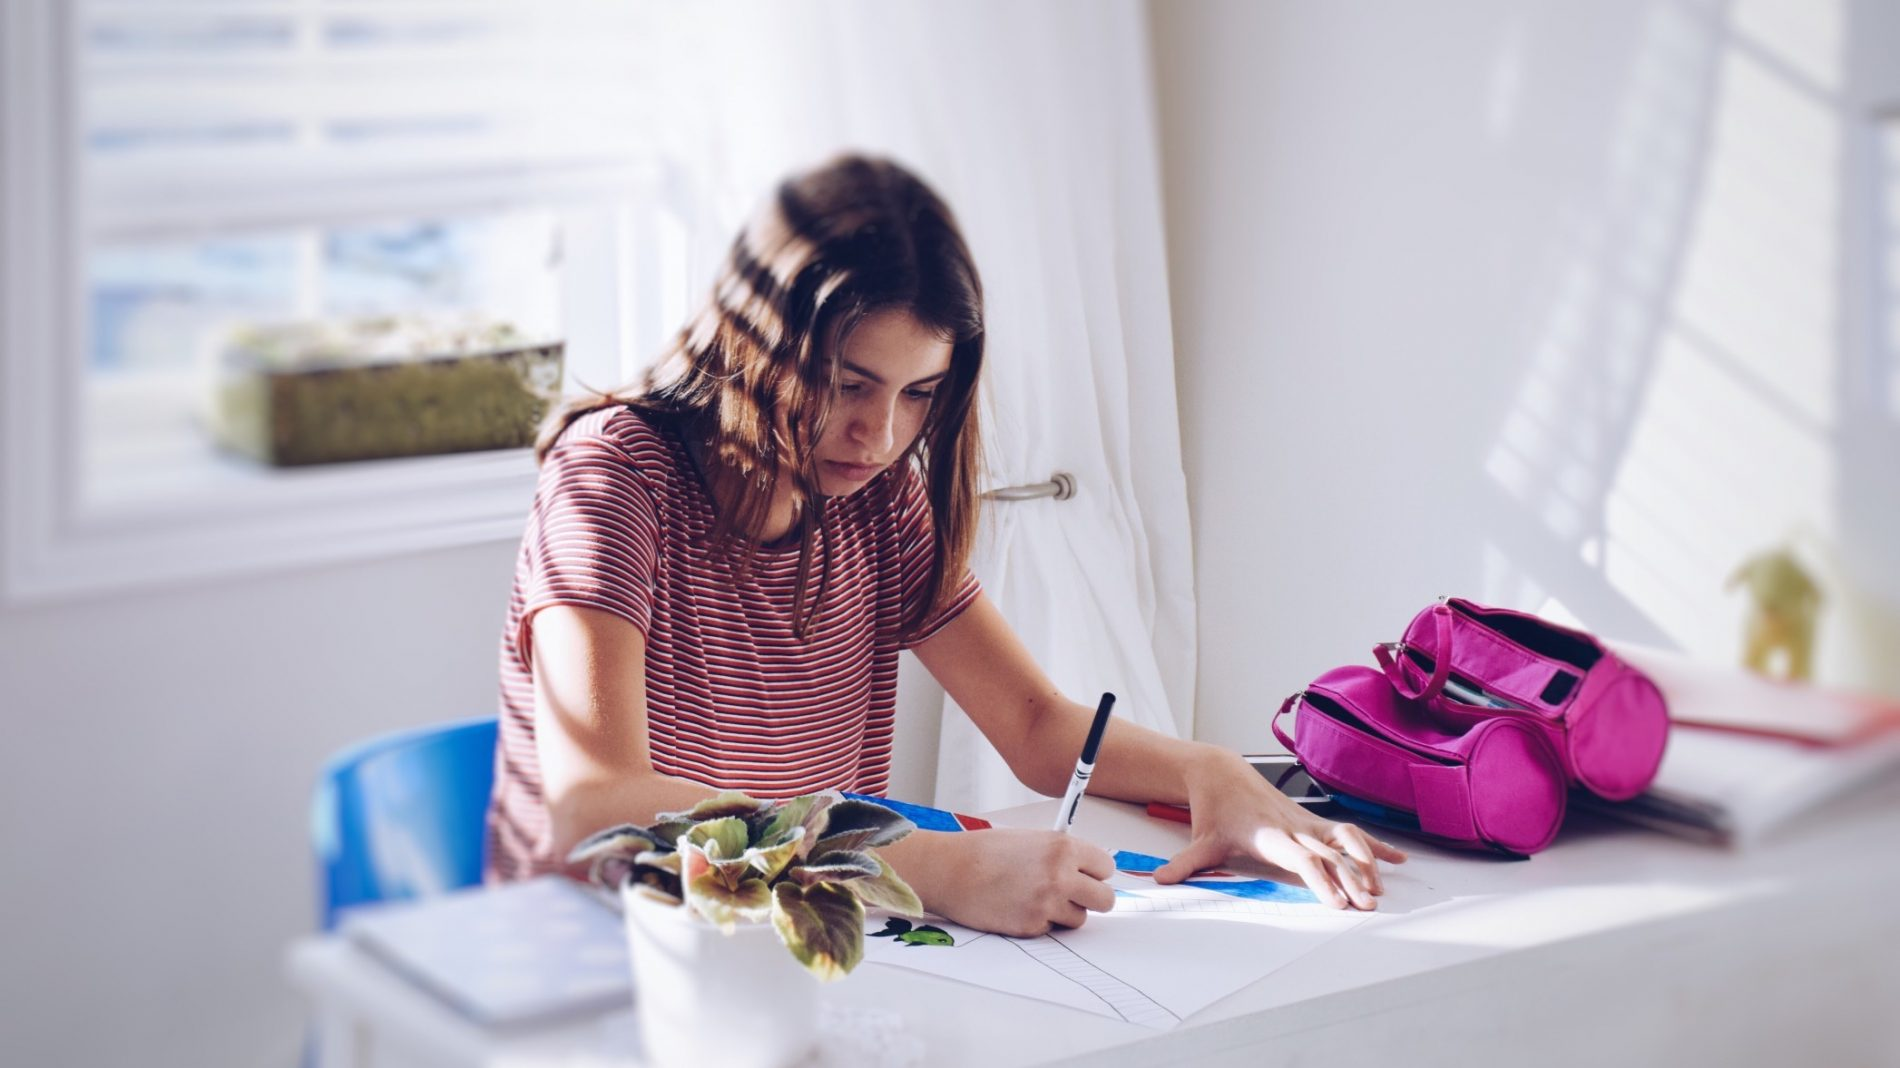 young-teenage-girl-working-on-her-school-project-in-a-brightly-lit-room_t20_7mXnpy